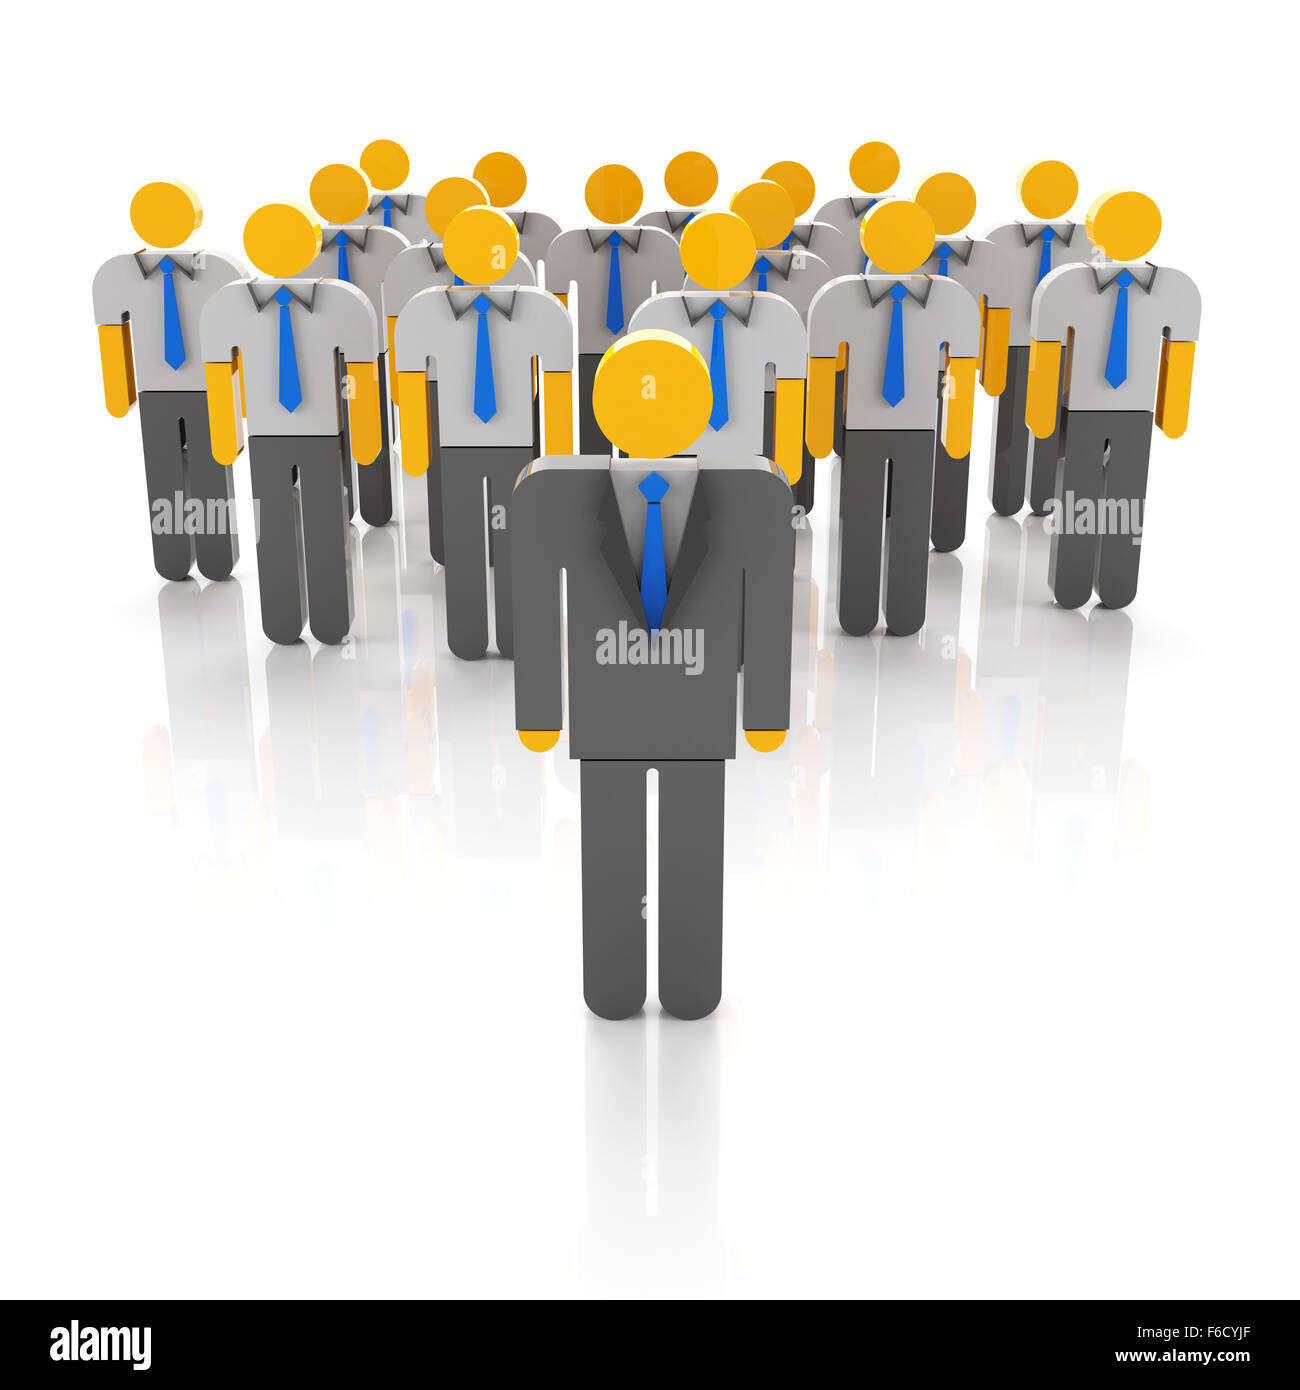 Business team and leadership - Stock Image